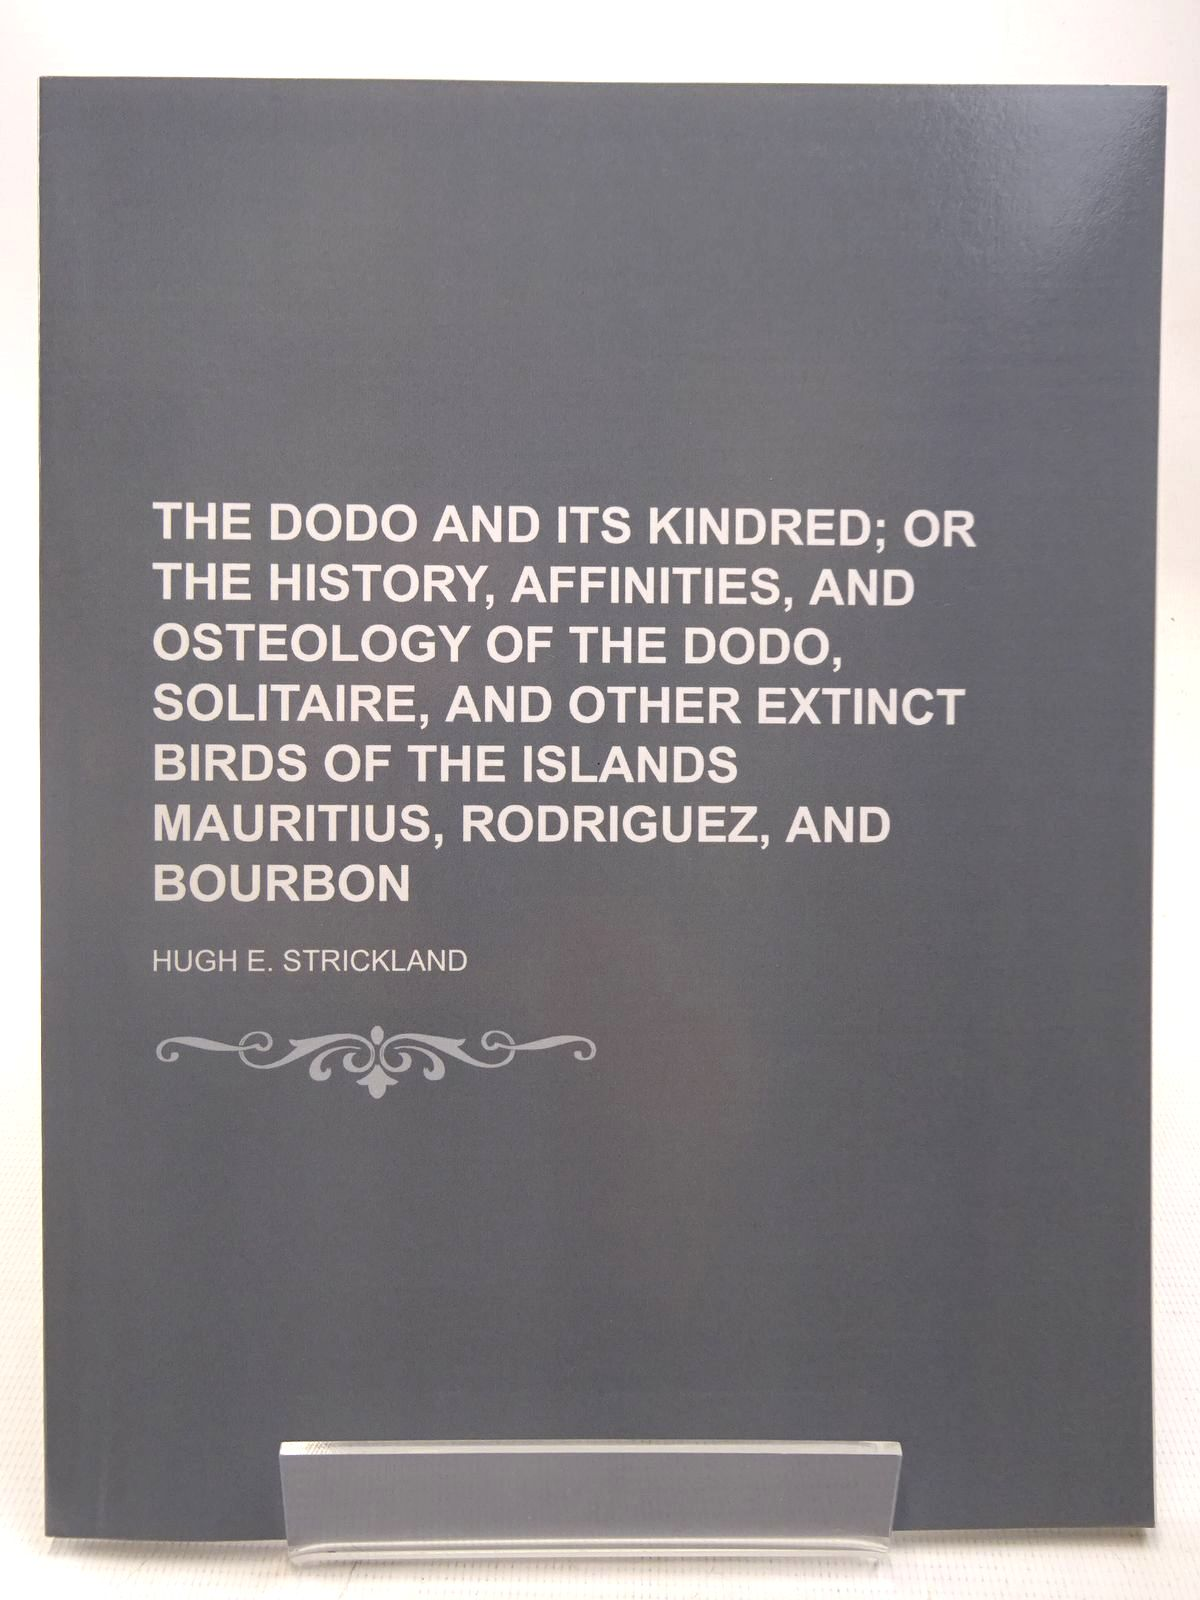 Photo of THE DODO AND ITS KINDRED written by Strickland, Hugh E. published by Lightning Source Uk Ltd (STOCK CODE: 2127820)  for sale by Stella & Rose's Books